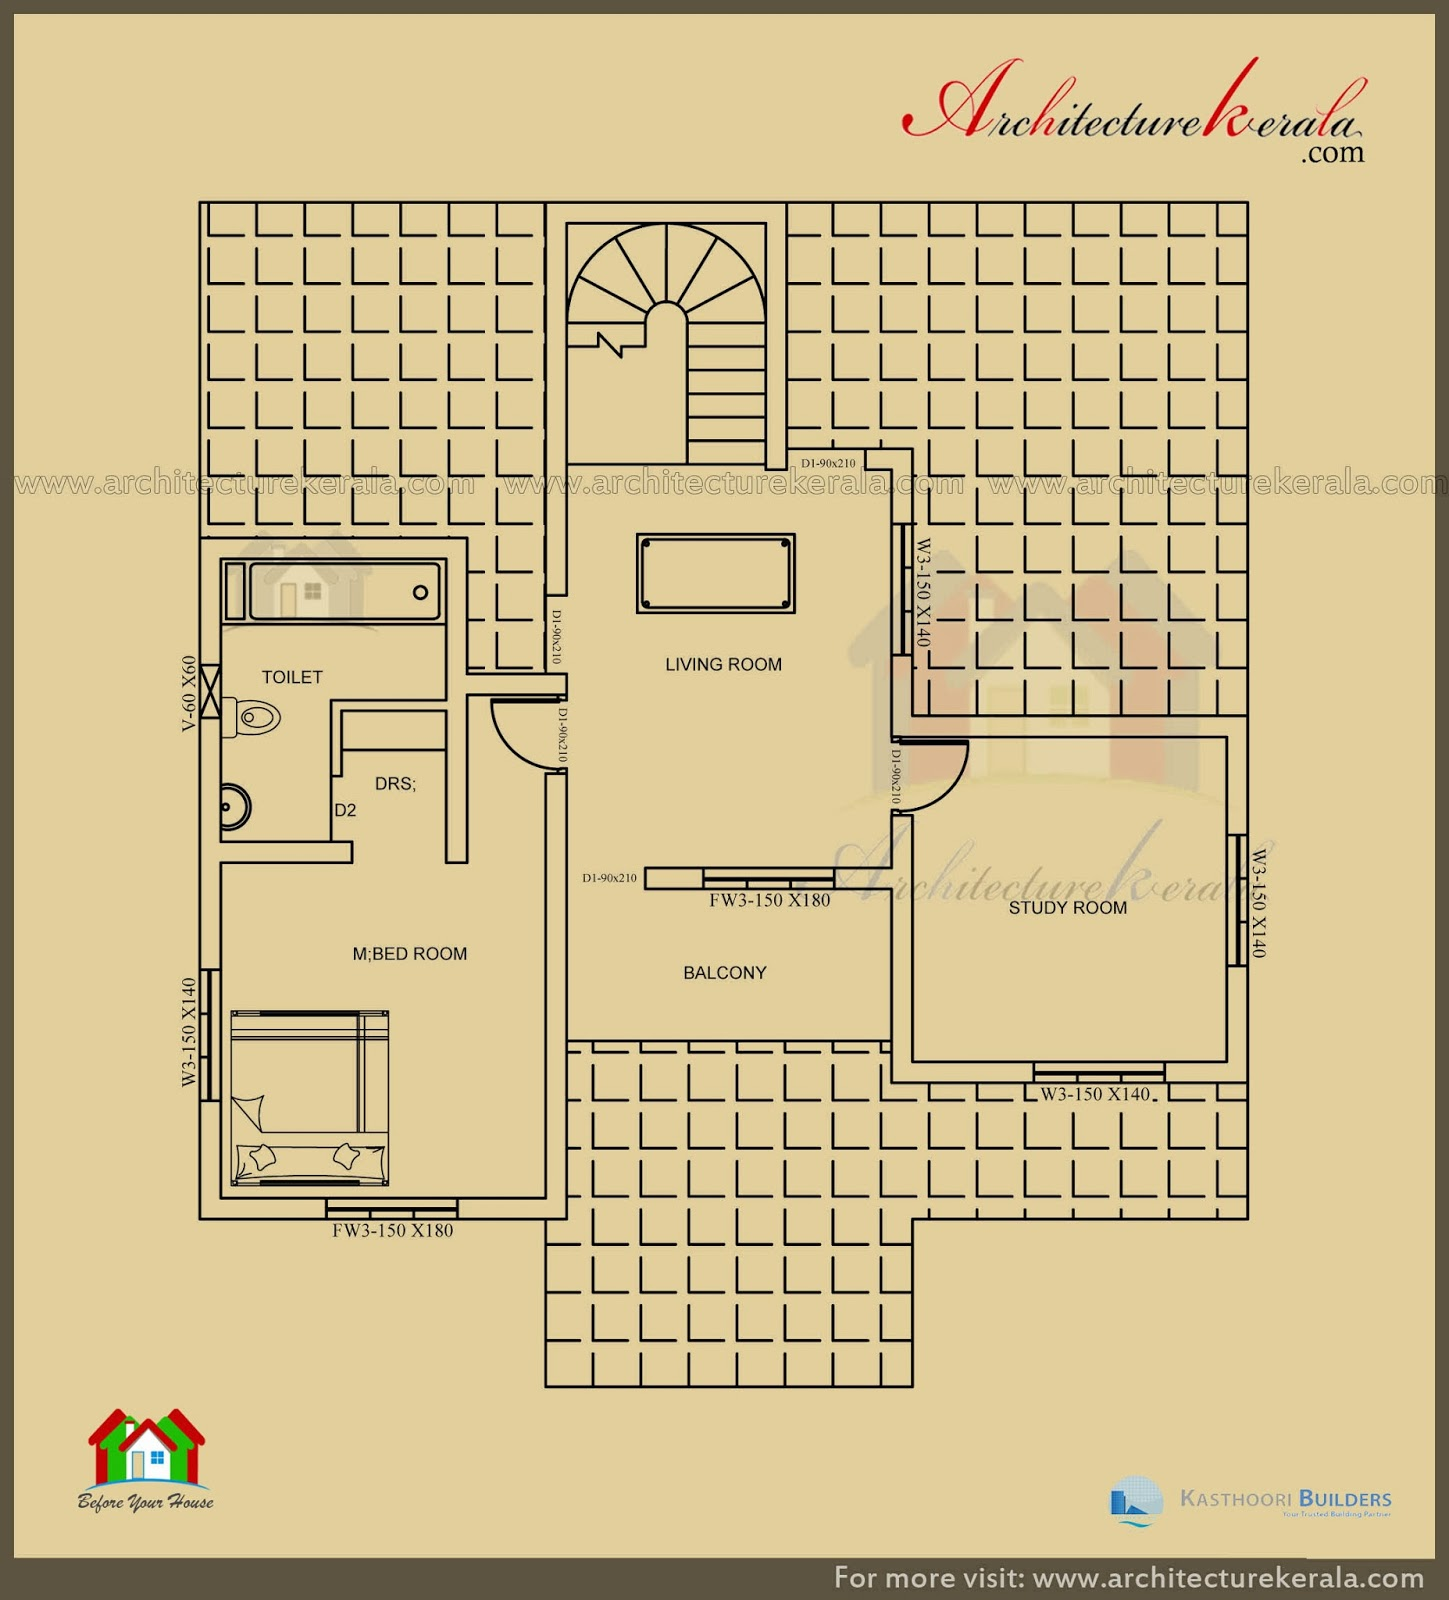 2500 sq ft 3 bedroom house plan with pooja room for 2500 sq ft apartment plans